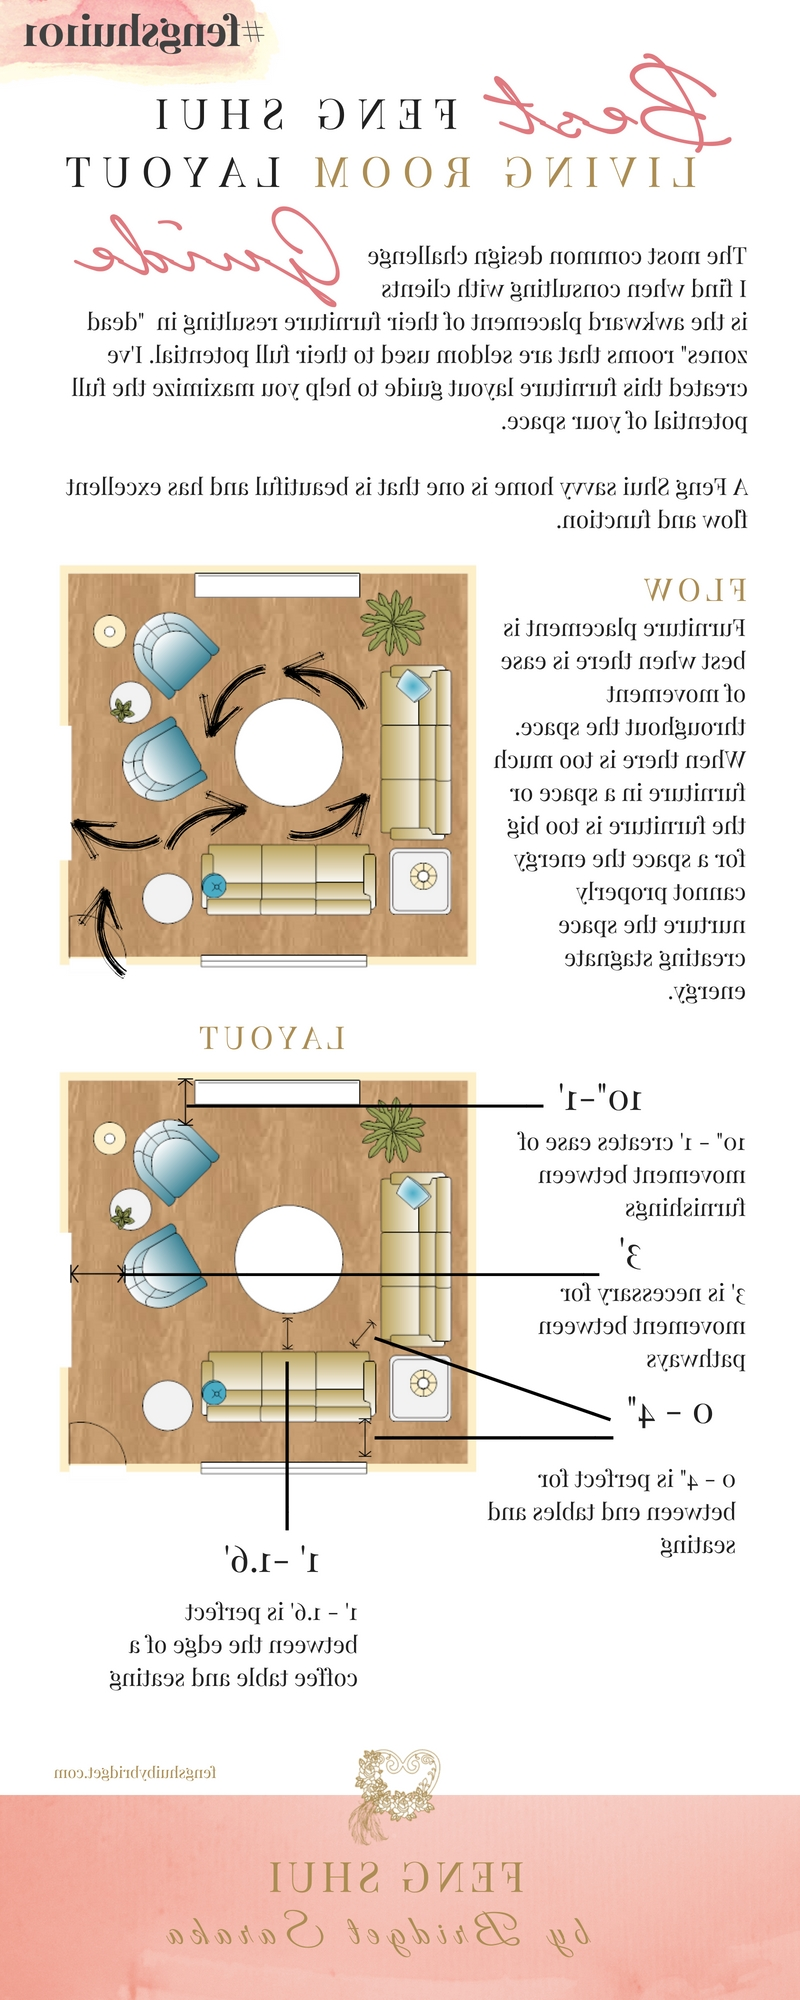 The Best Feng Shui Living Room Layout Guide #Fengshui101 30+ Feng Shui Small Living Room Layout Ideas